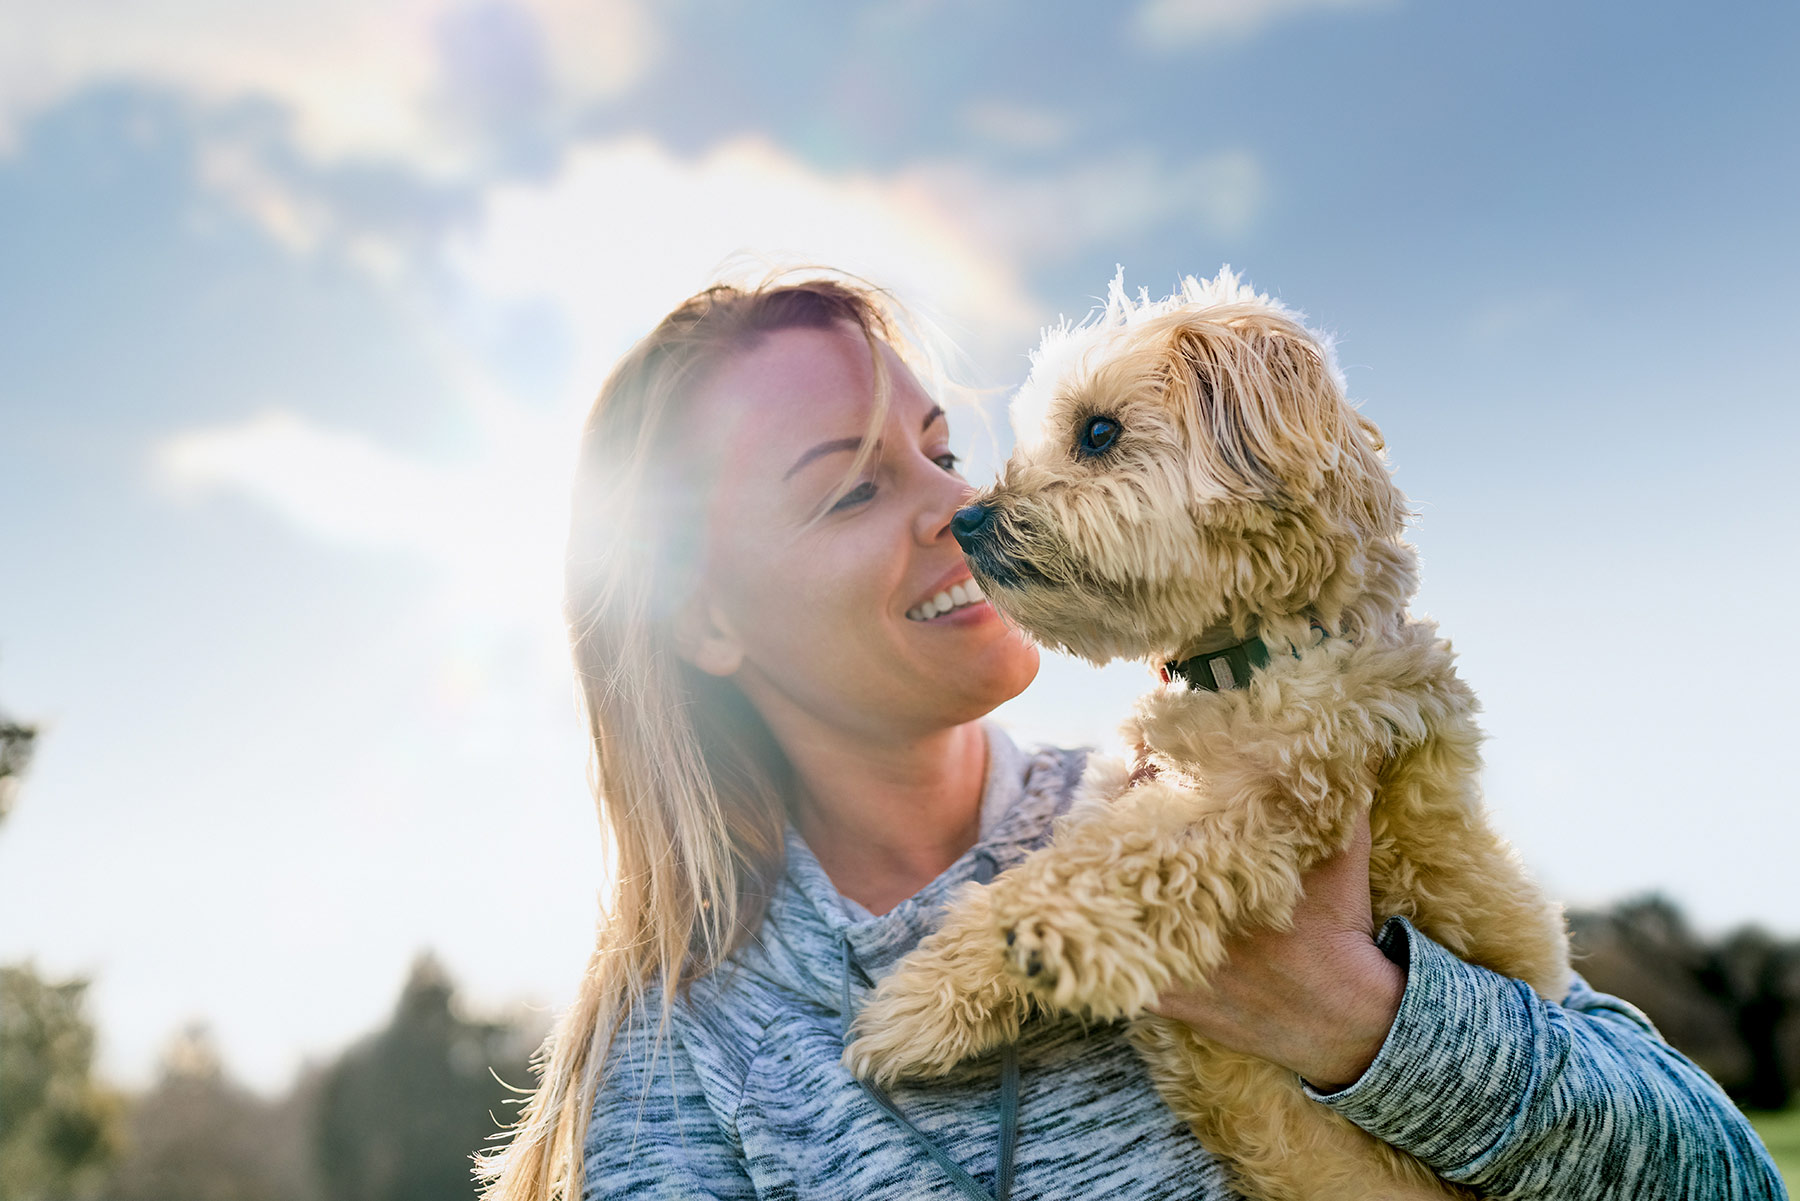 A-woman-holding-her-dog-against-a-sunlit-sky